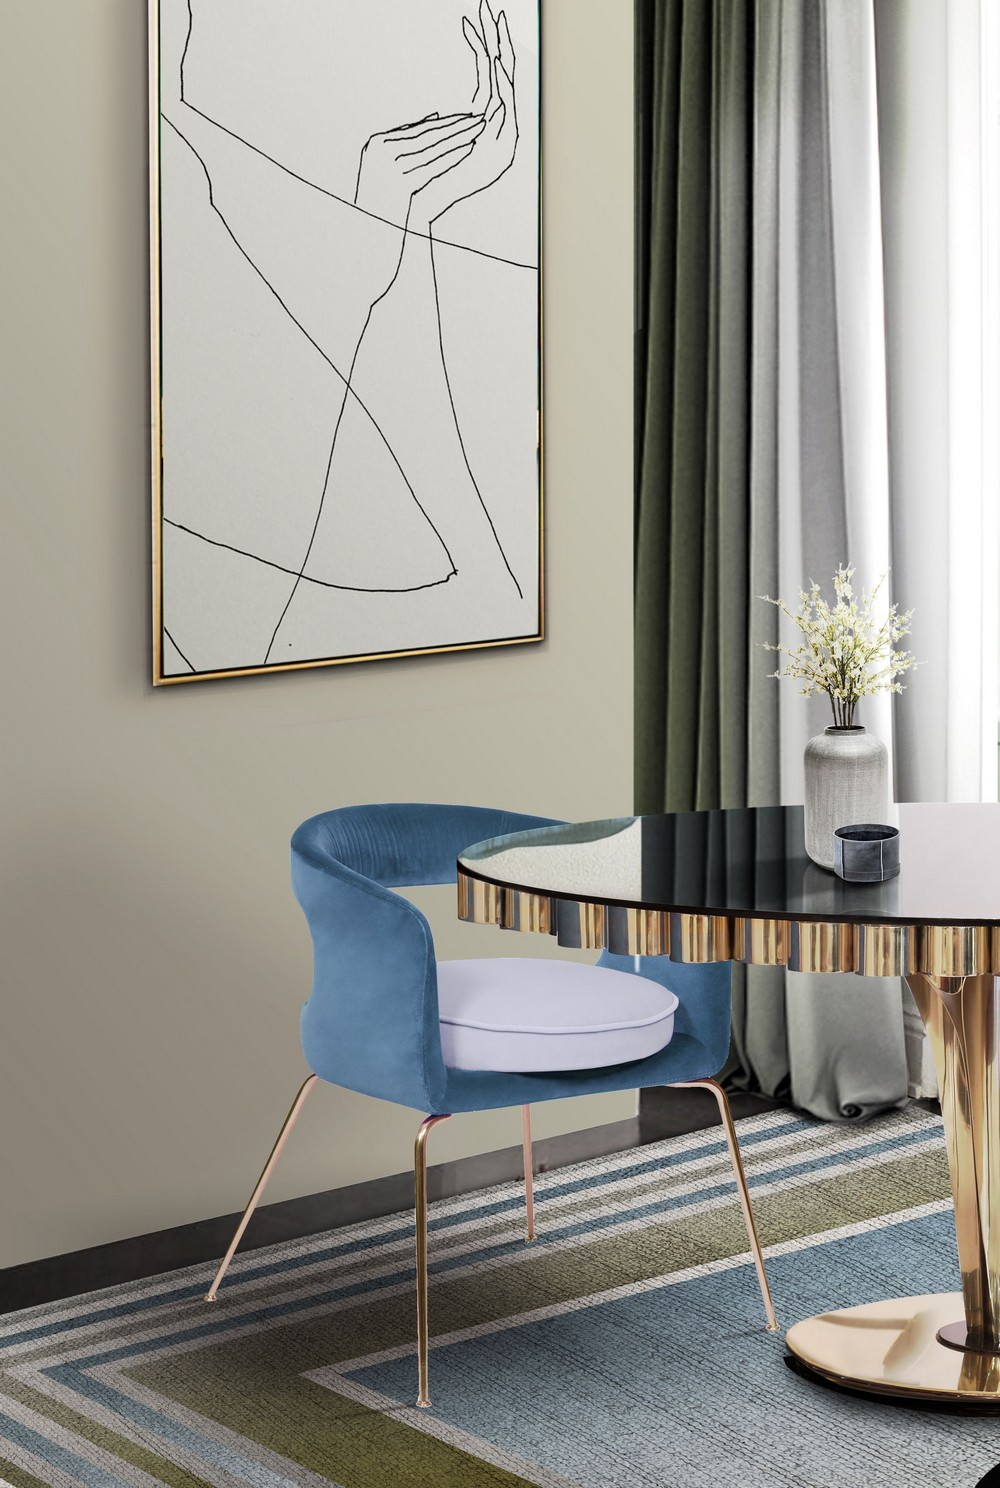 5 Beautiful Dining Chairs To Give A Splash of Color In Your Dining Room dining chairs Beautiful Dining Chairs To Give A Splash of Color In Your Dining Room Zy95aVtg